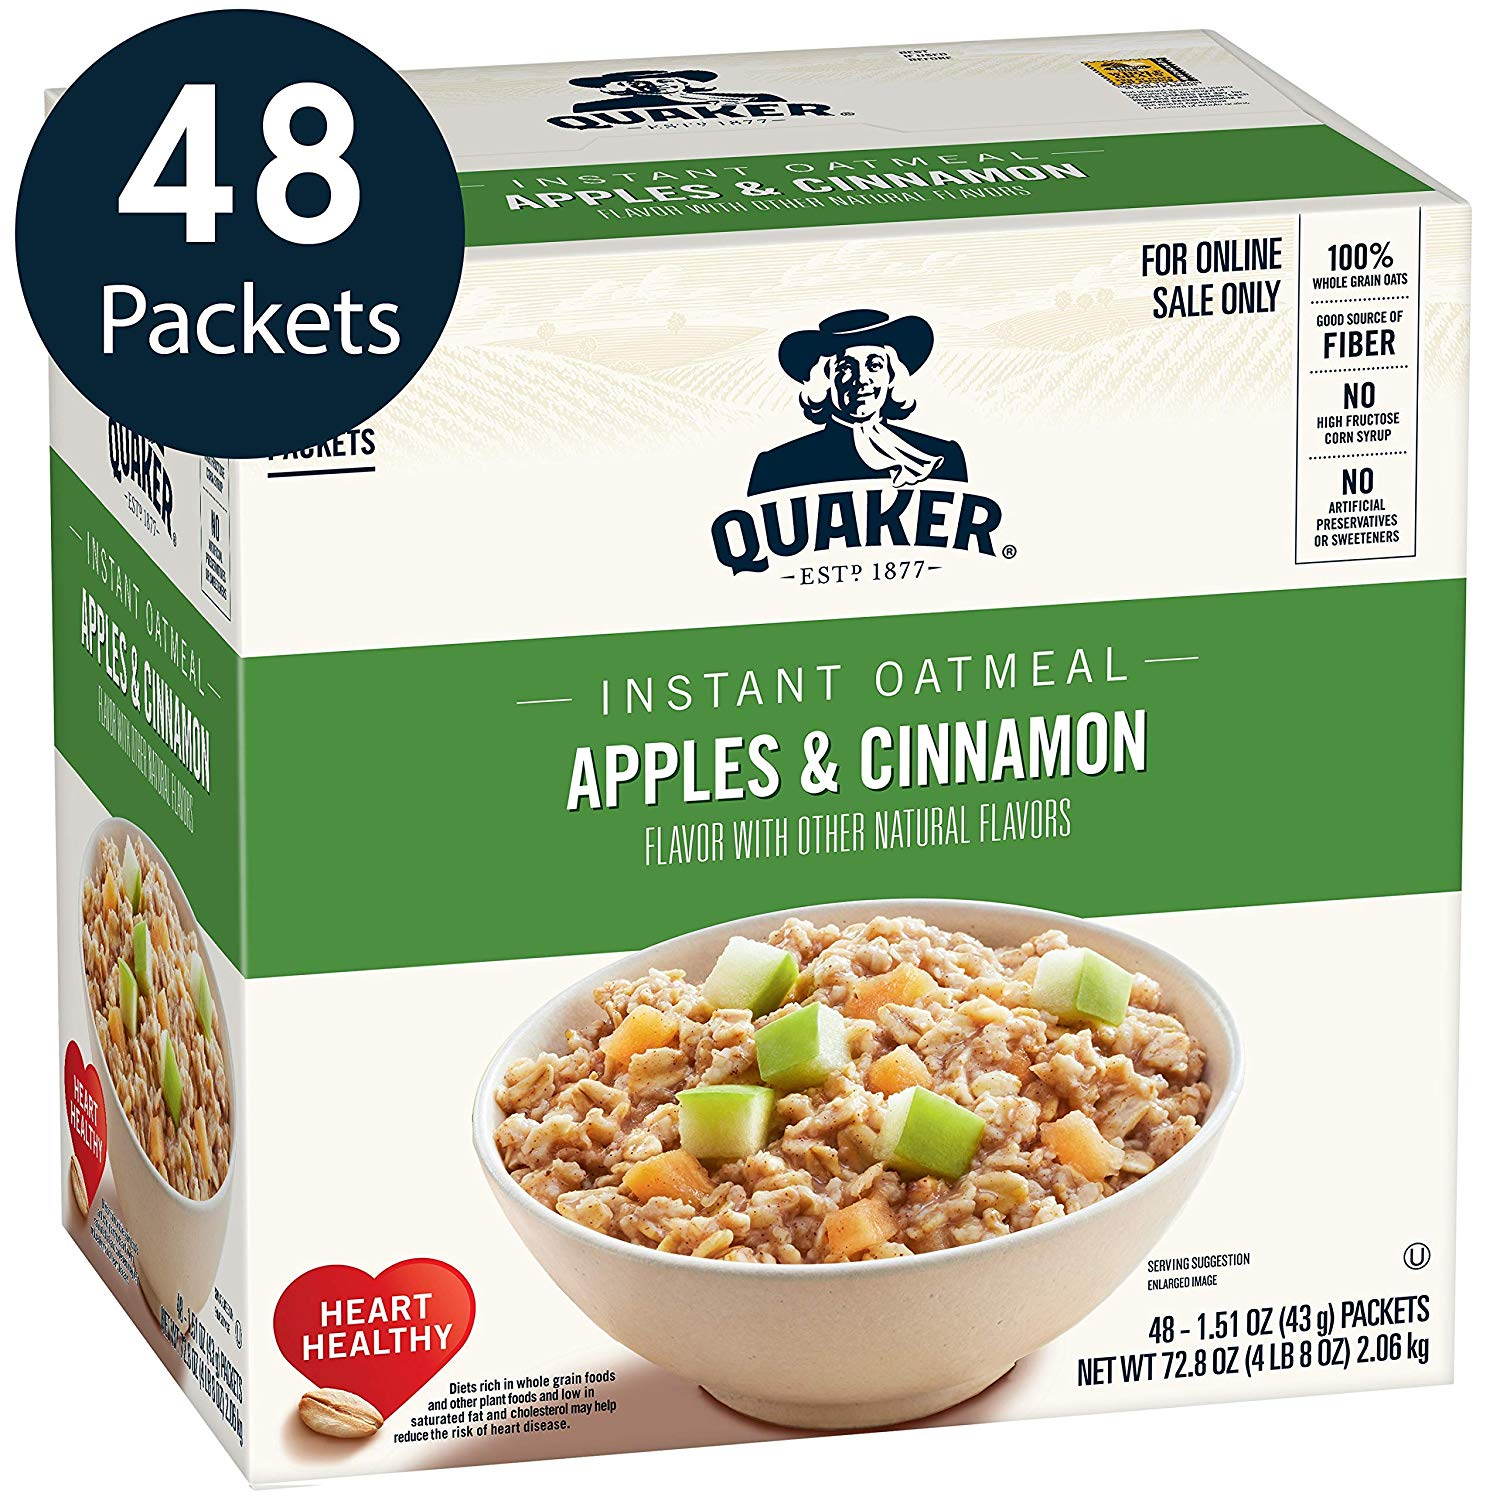 Quaker Instant Oatmeal, Apples & Cinnamon, 48 Count only $6.69! (25% off)